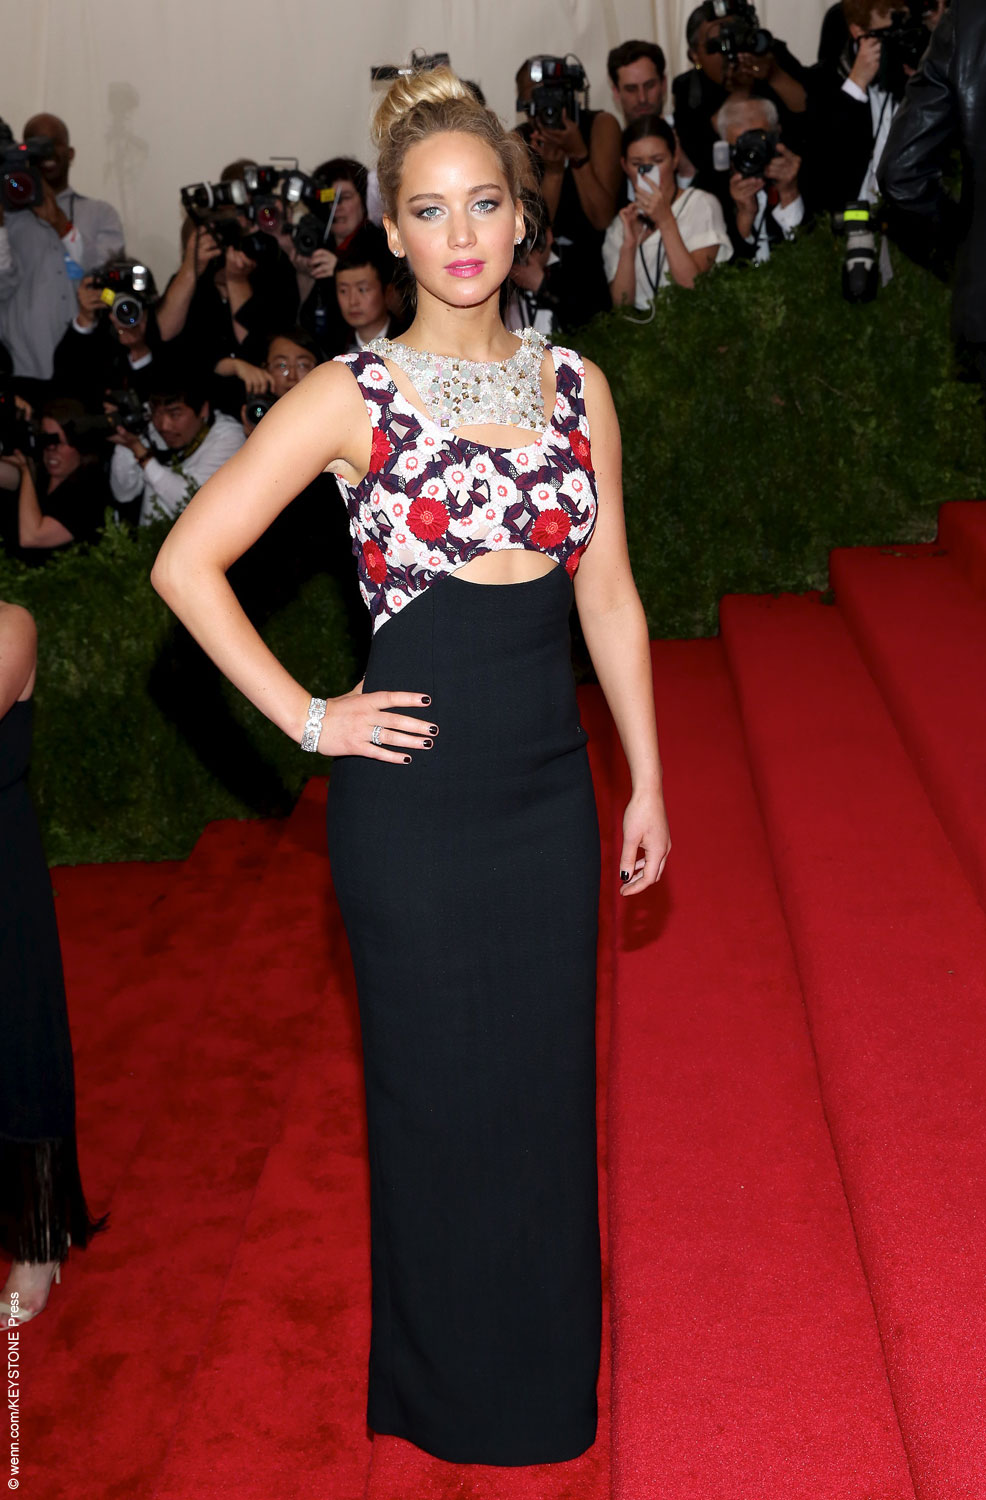 Jennifer Lawrence, co-chair of this year's Met Gala, showed up on the red carpet looking stunning in a Dior Couture floral and black dress. Her bronzed skin, pink lips and blonde locks pulled back into a topknot completed her spring look perfectly.